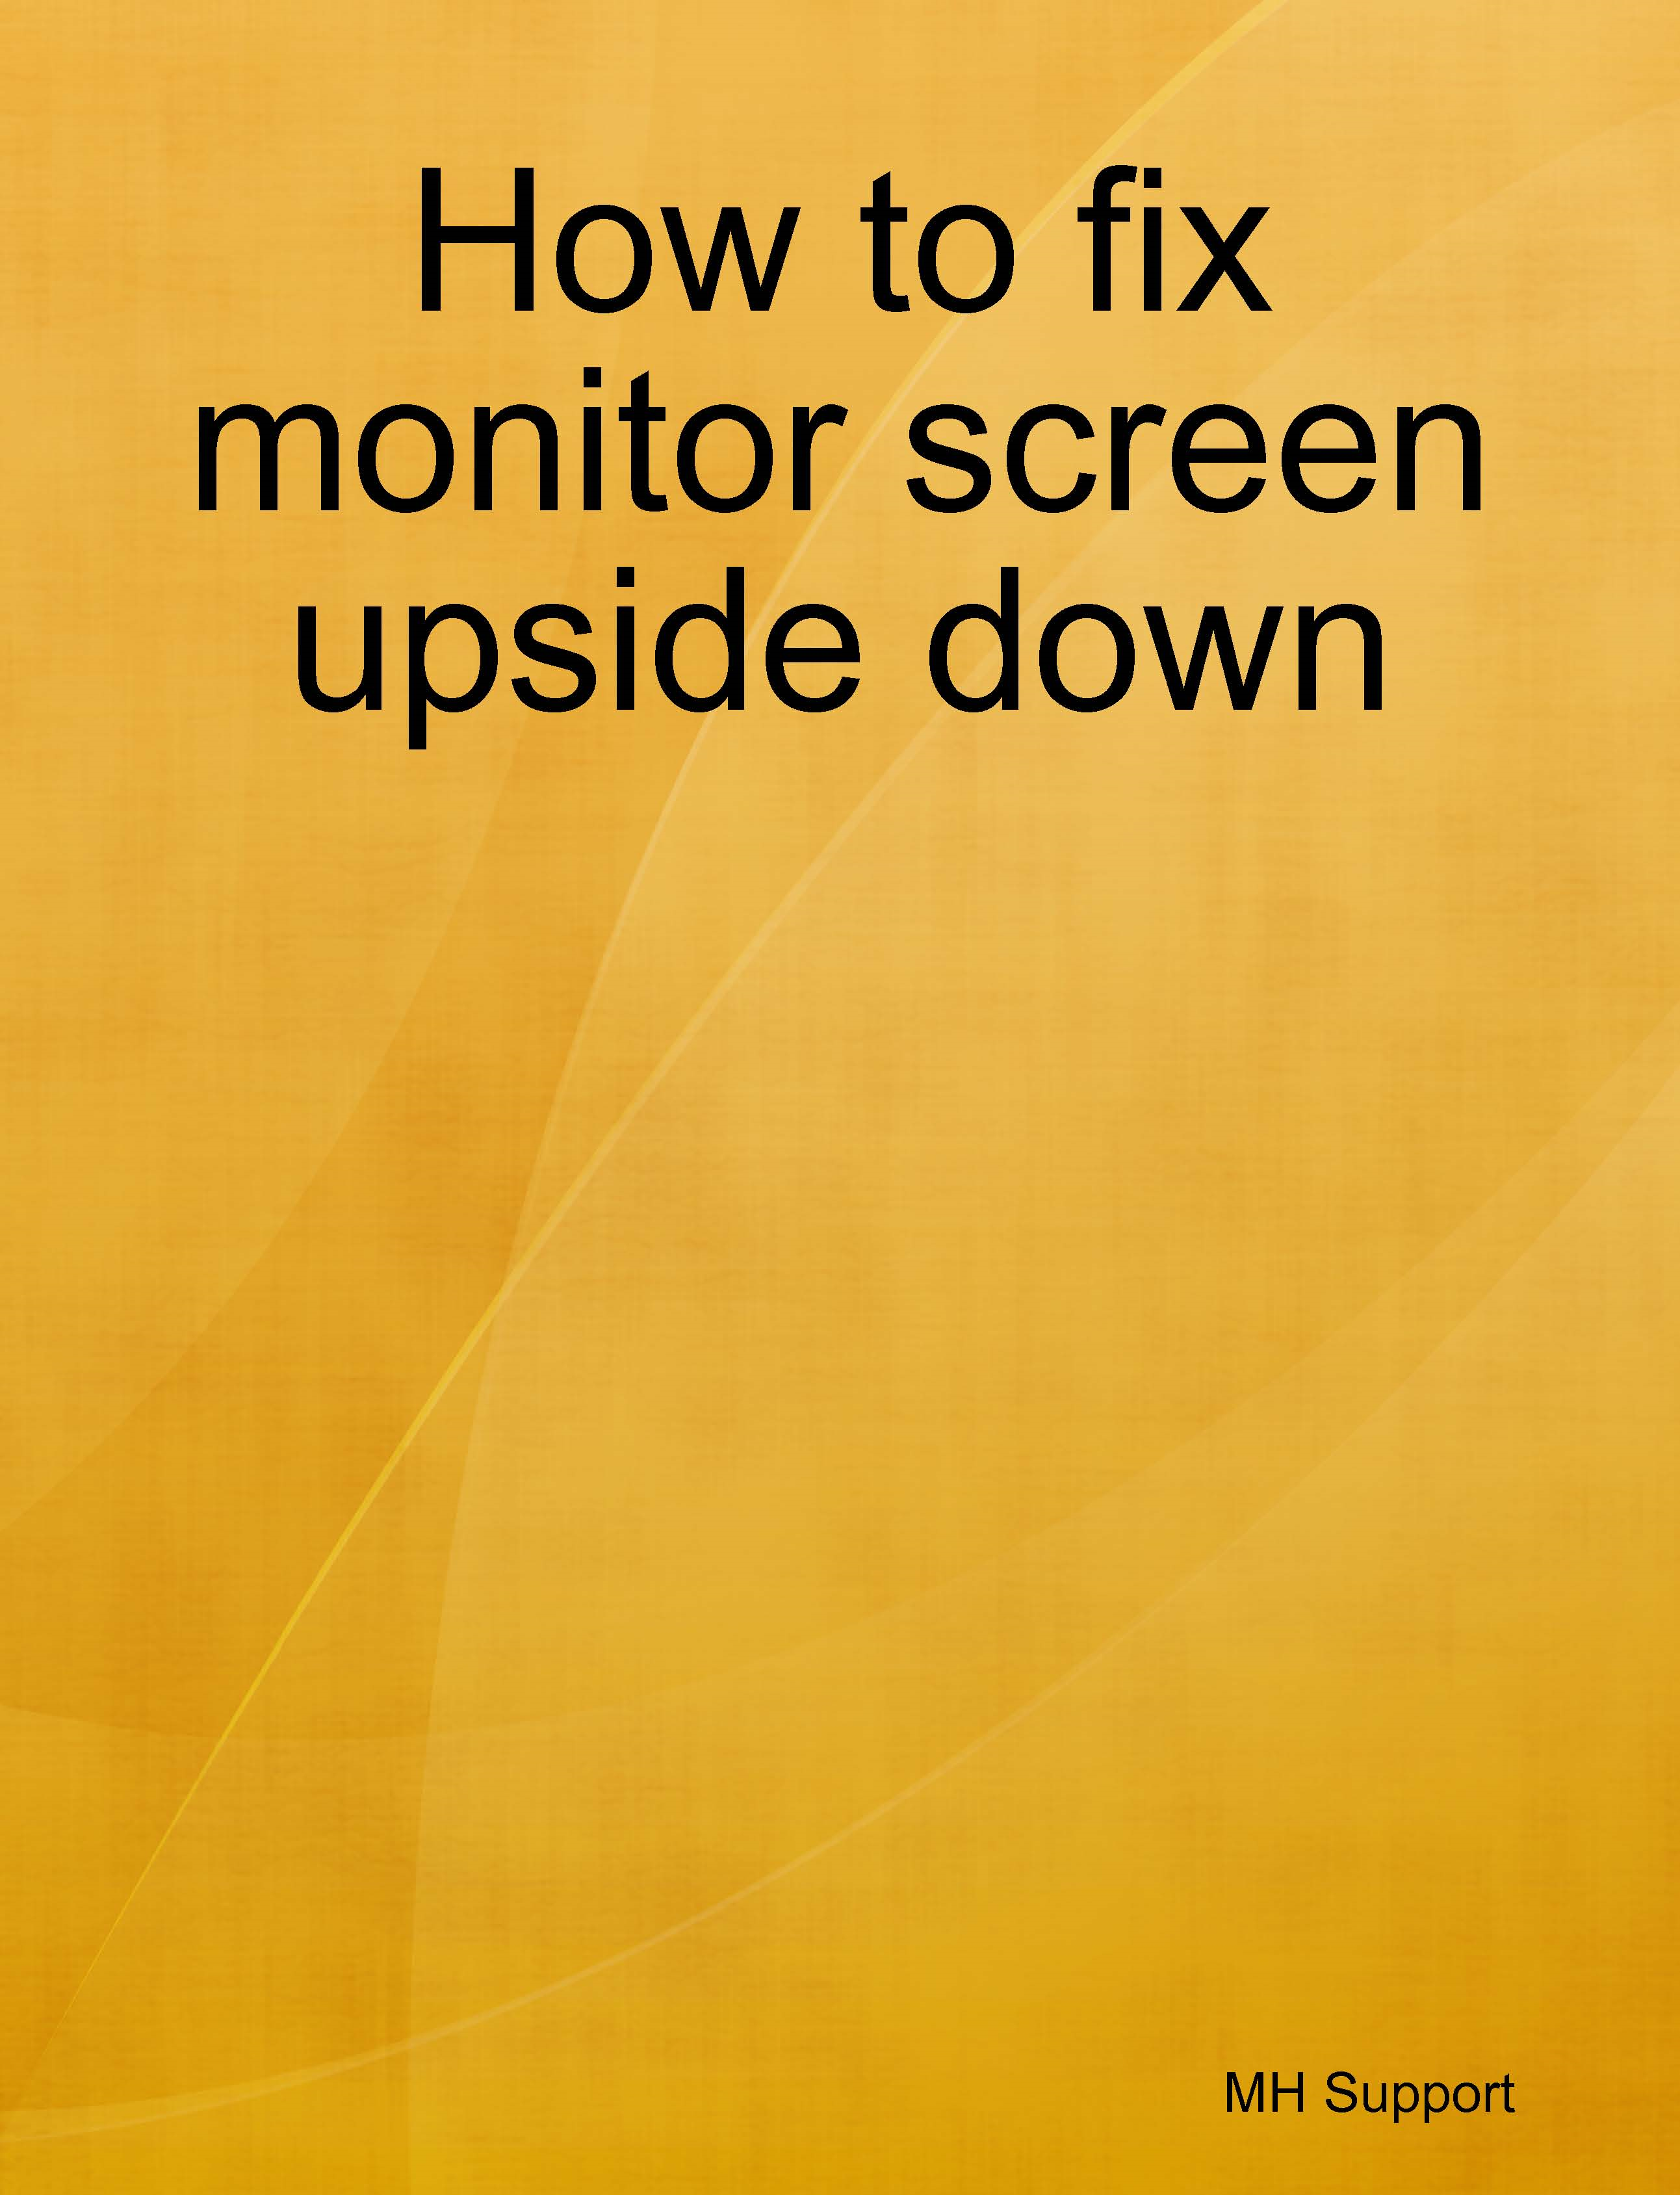 How to fix monitor screen upside down